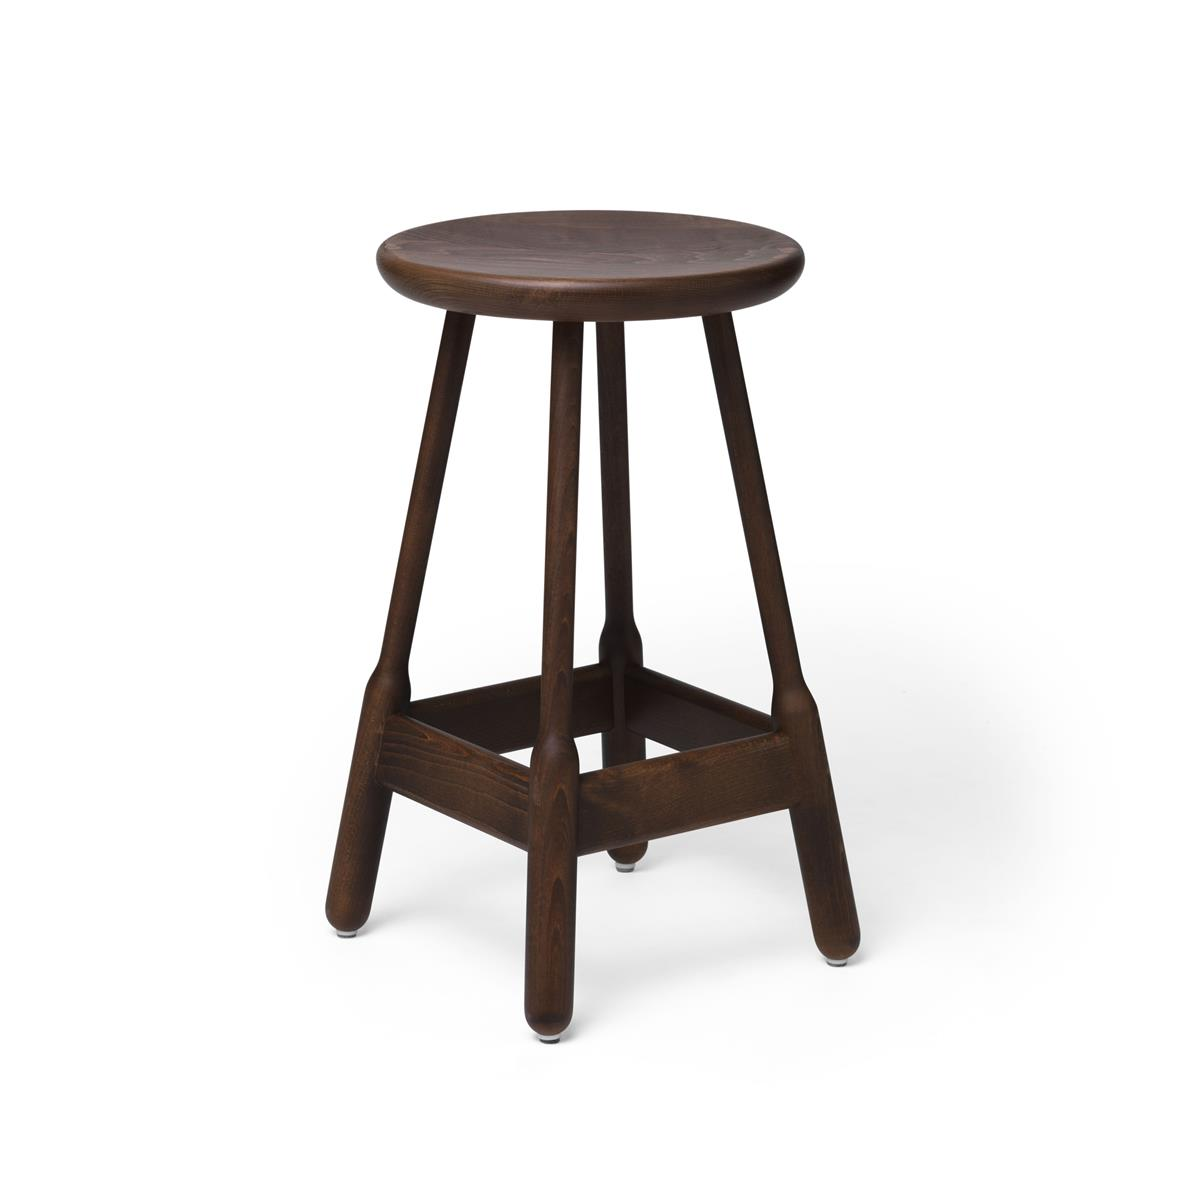 Albert Low Bar Stool - Walnut Stained